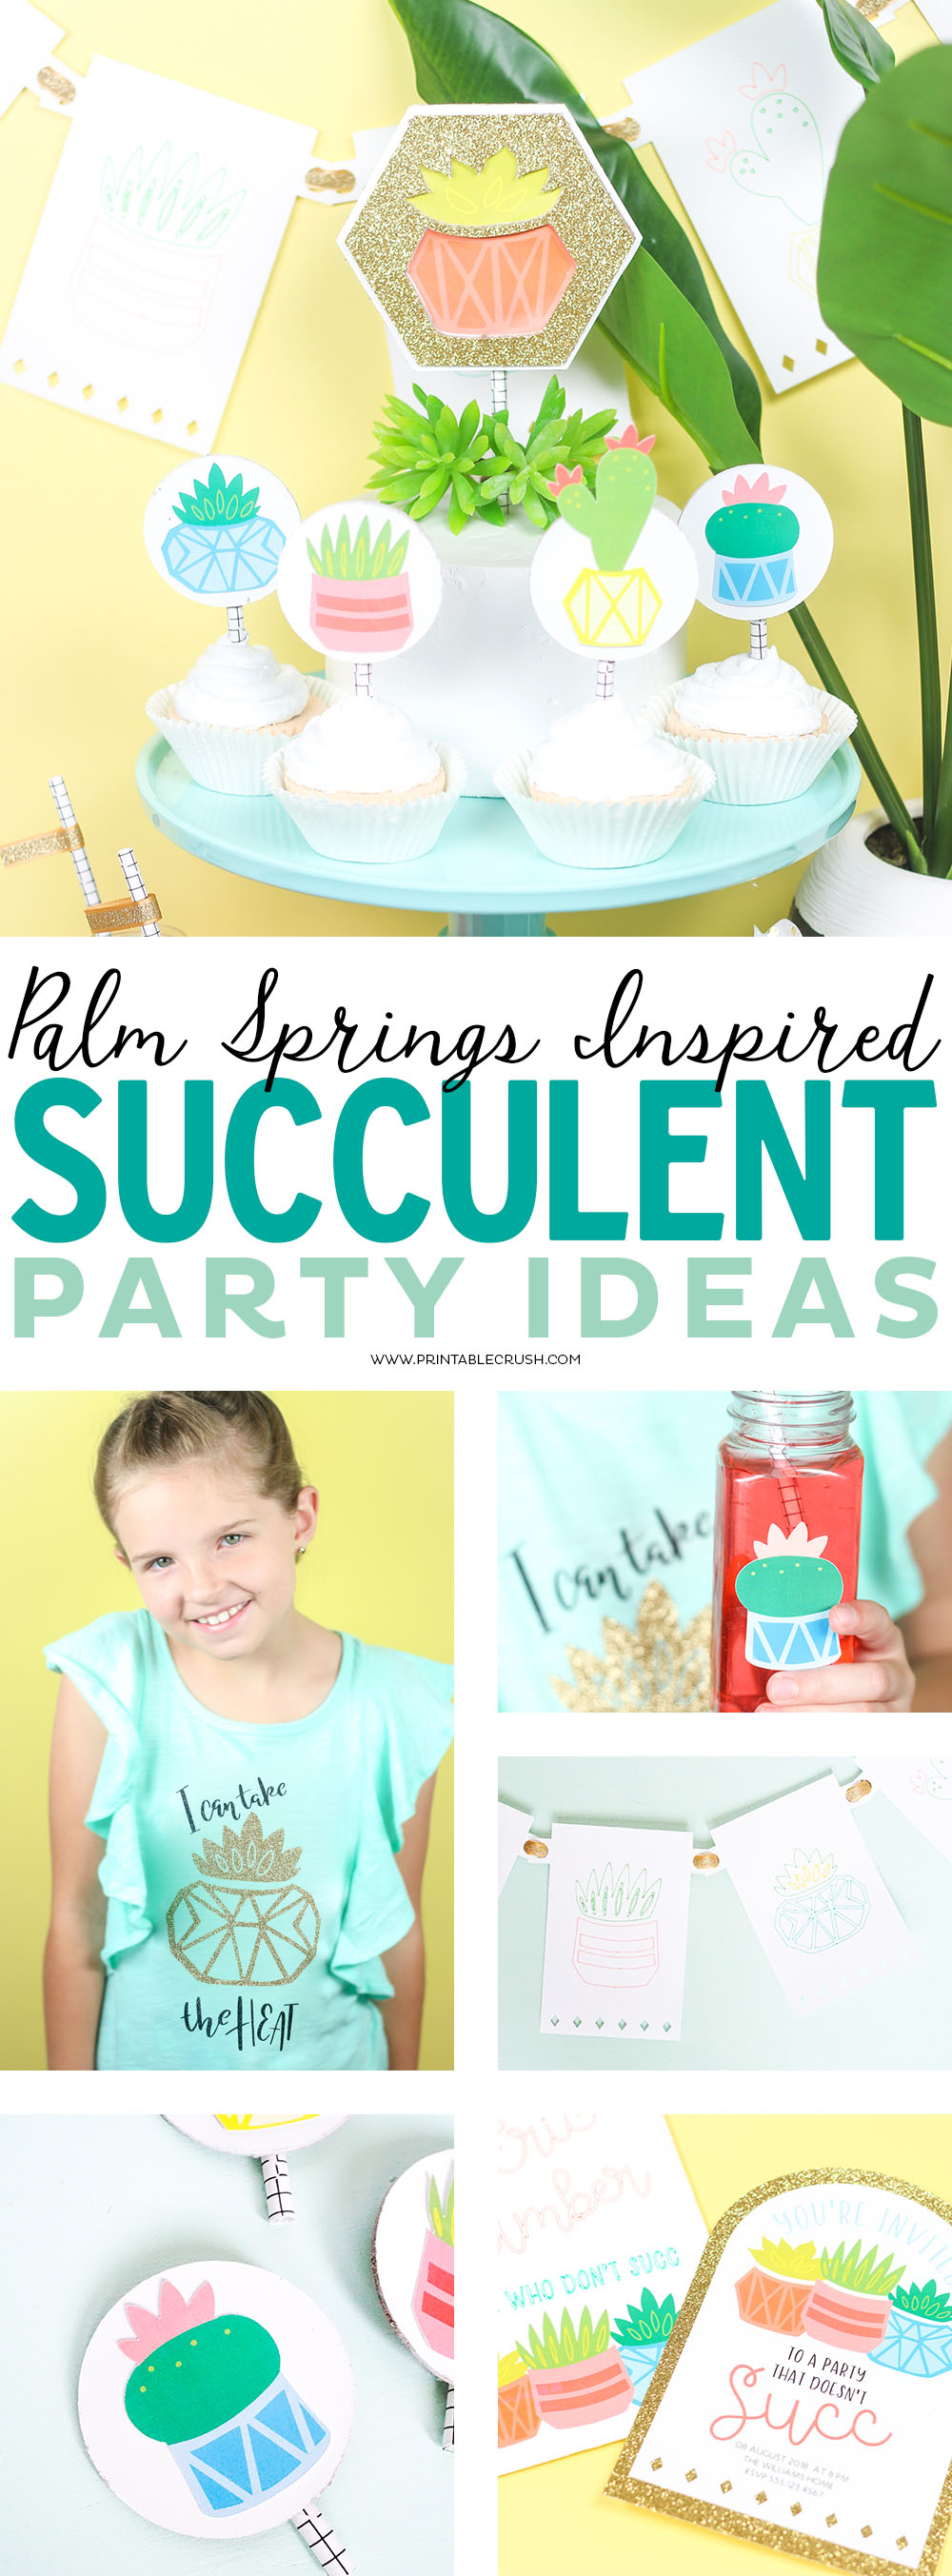 Throw the perfect end of summer party with these Palm Springs-Inspired Succulent Party Ideas. Use your Cricut to make these gorgeous party printables! #cricutpartyideas #succulent #partyideas